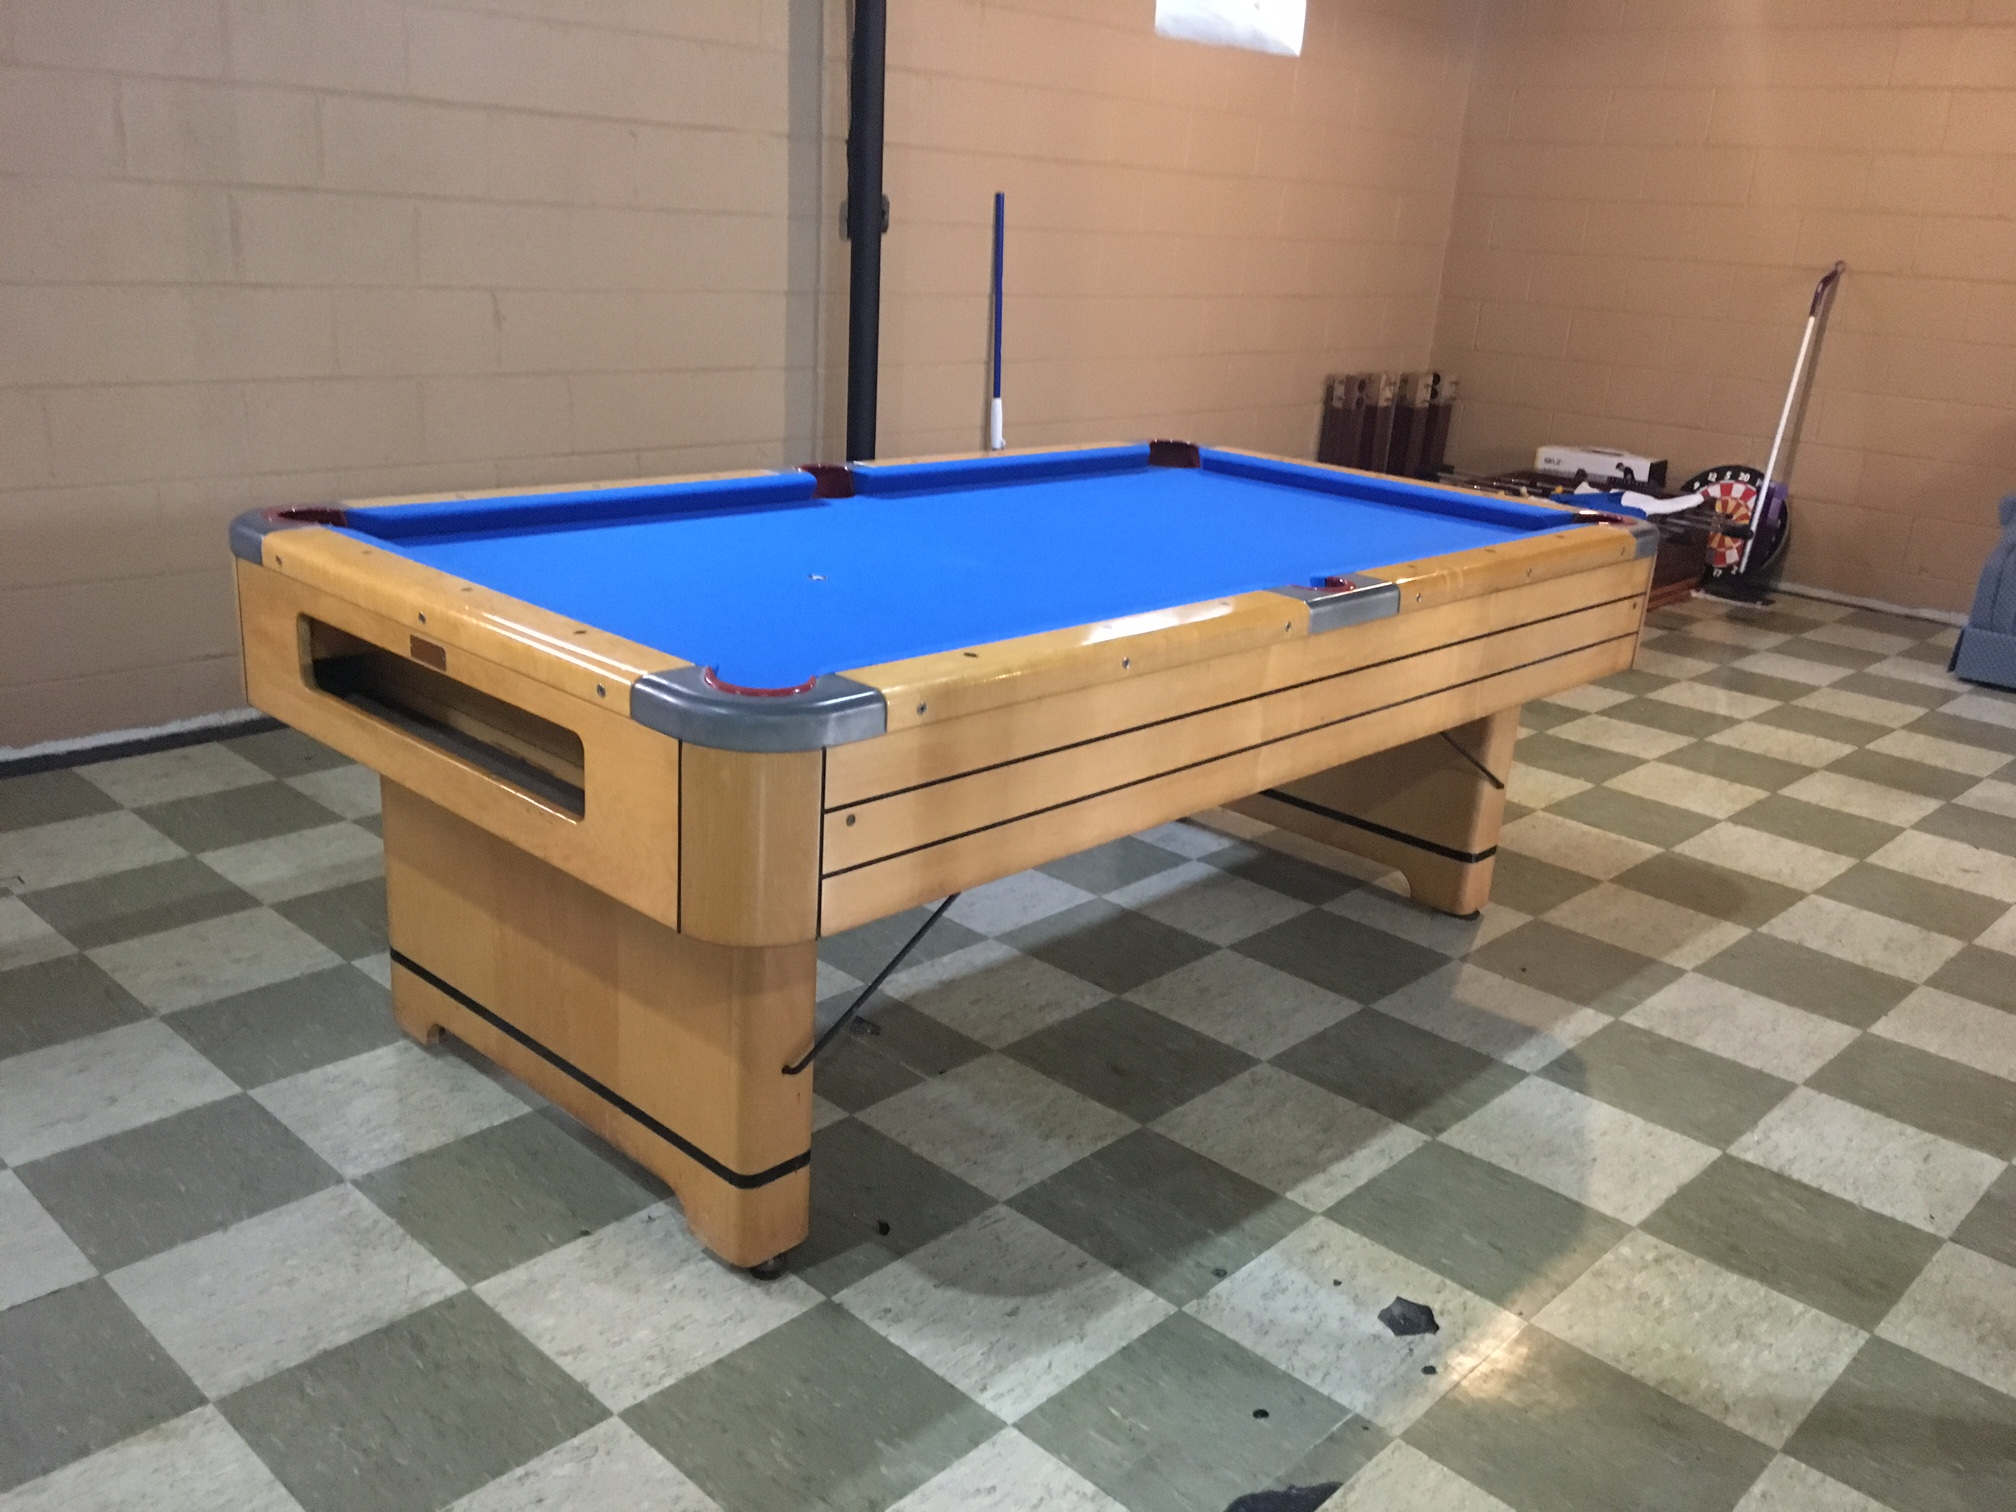 inspire image for of pool ideas repair furniture daily tables table bumper fun cheap